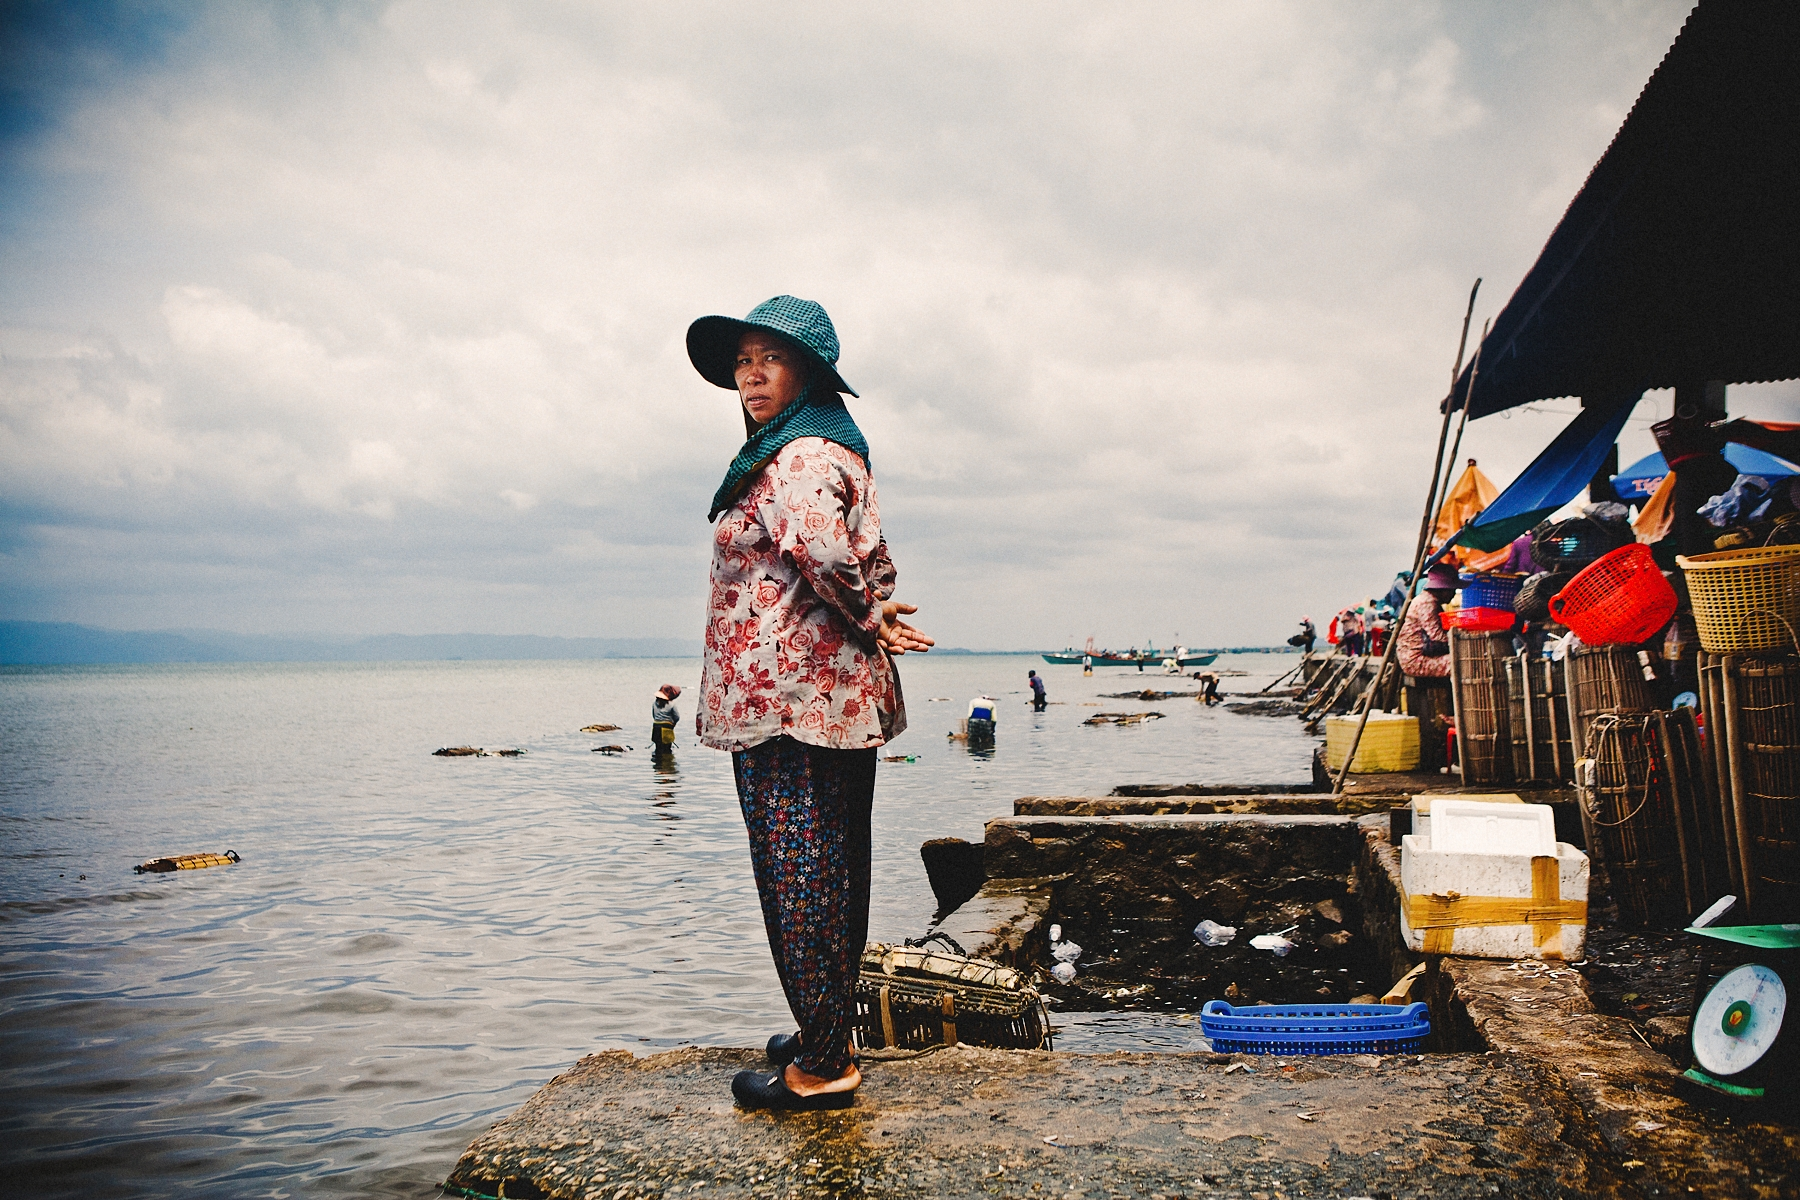 Khmer woman working in the crab market in Kep.